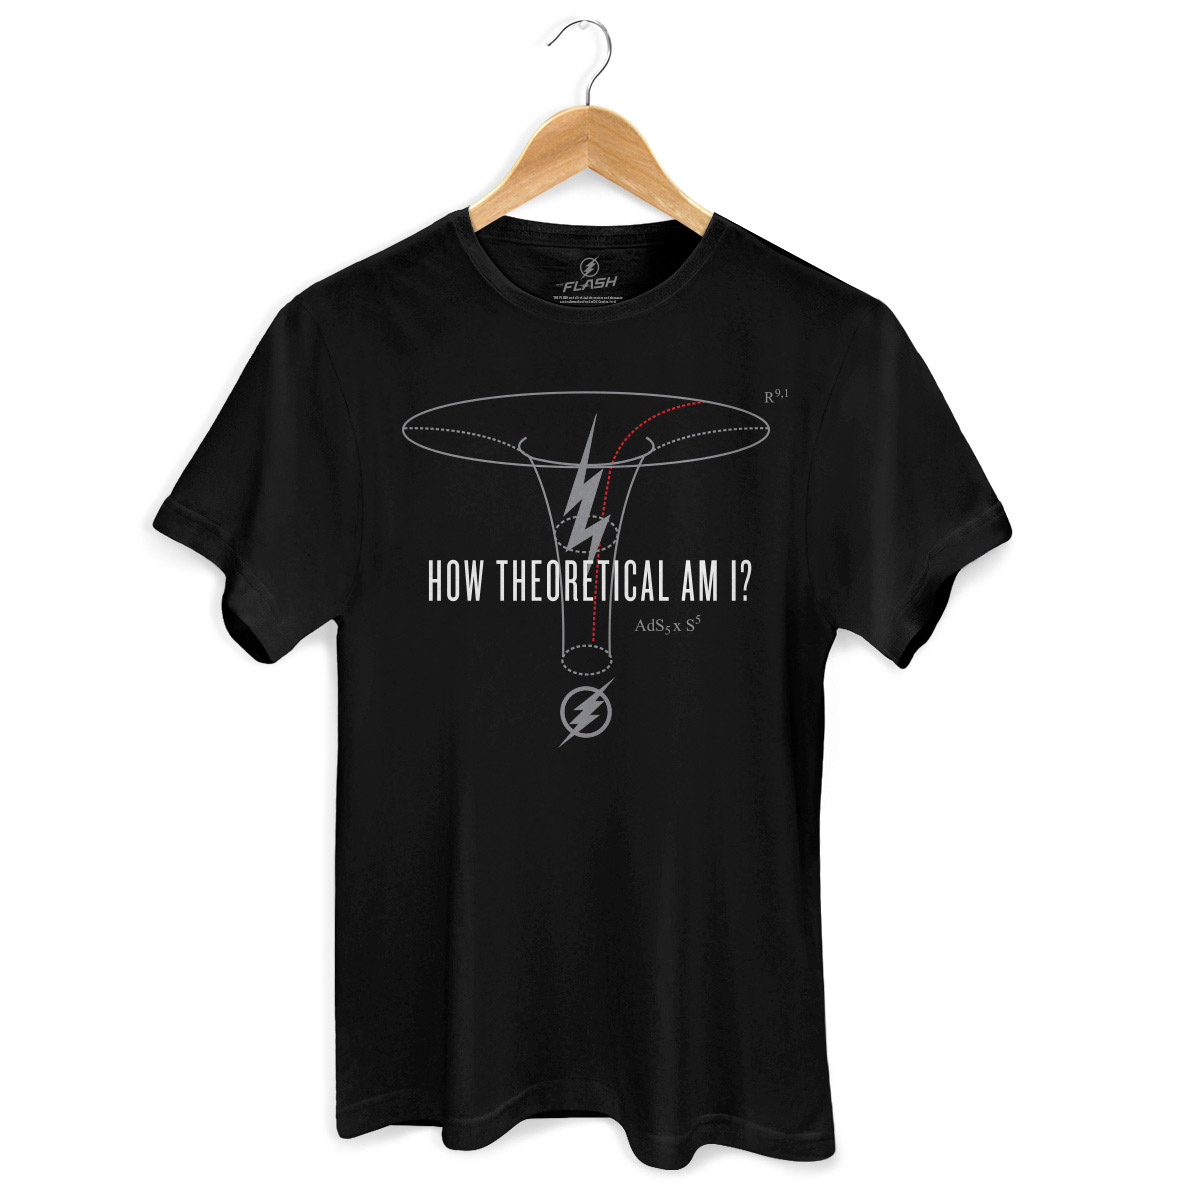 Camiseta Masculina The Flash Serie How Theoretical Am I?